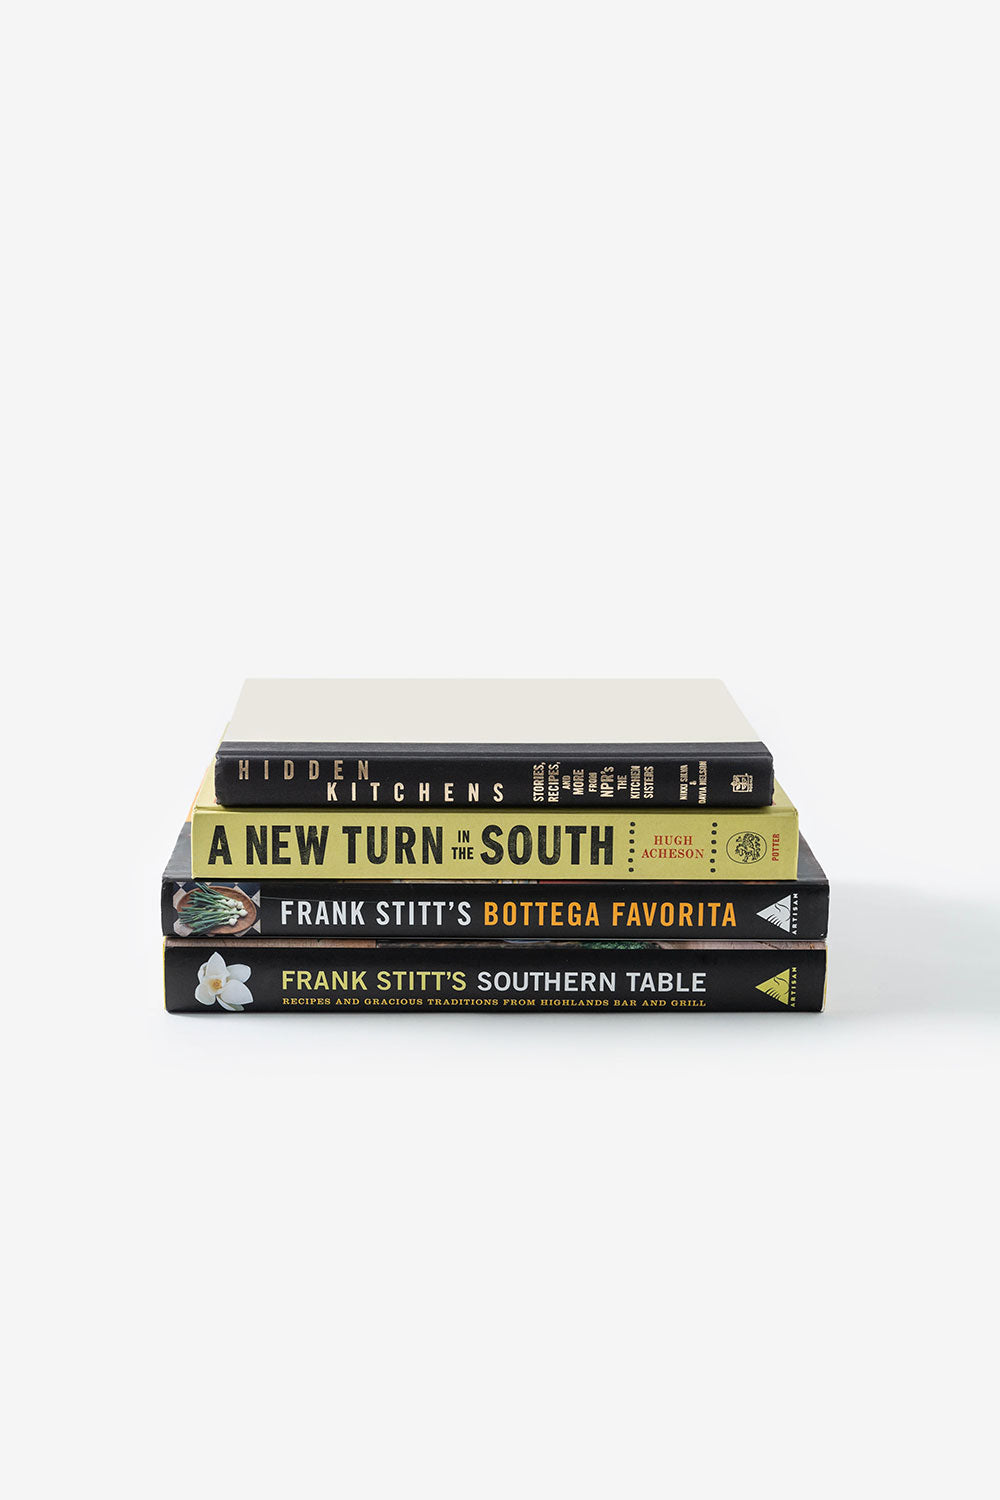 Alabama Chanin Natalie's Favorites Bundle Cookbooks Selected by Frank Stitt and More